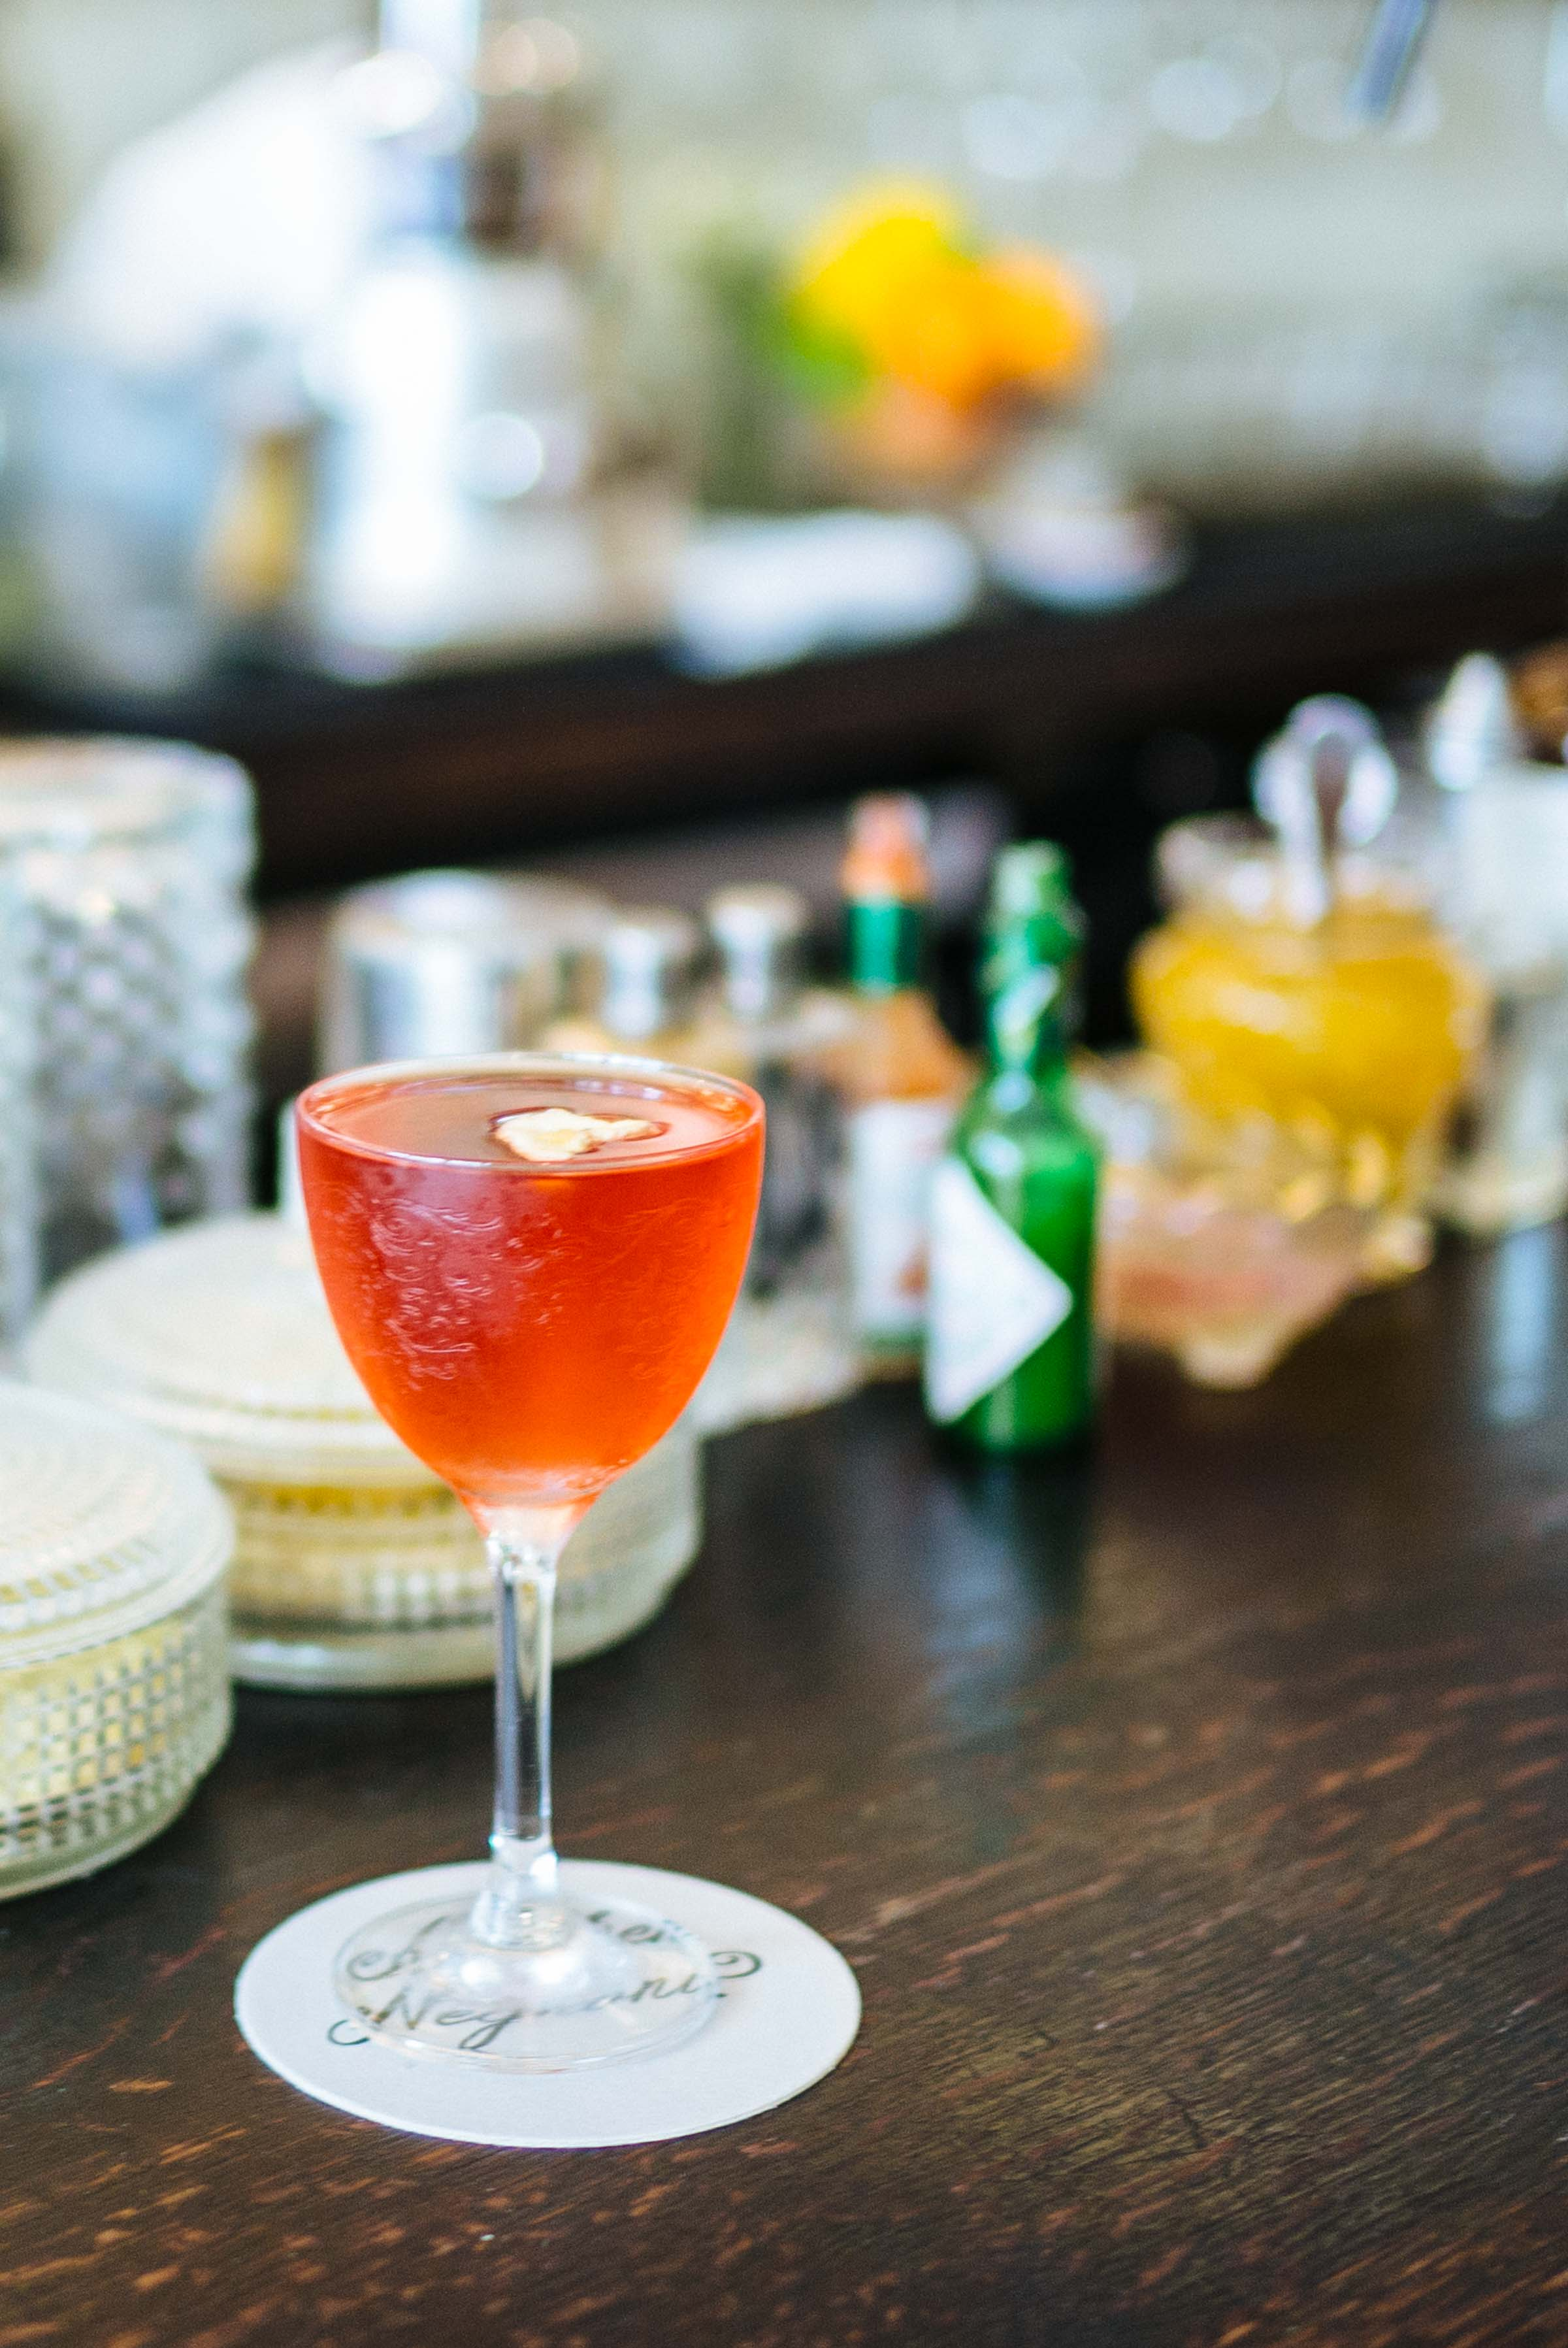 Order a negroni at the negroni bar Dante in New York, photo by Sarah Stanfield of The Taste Edit